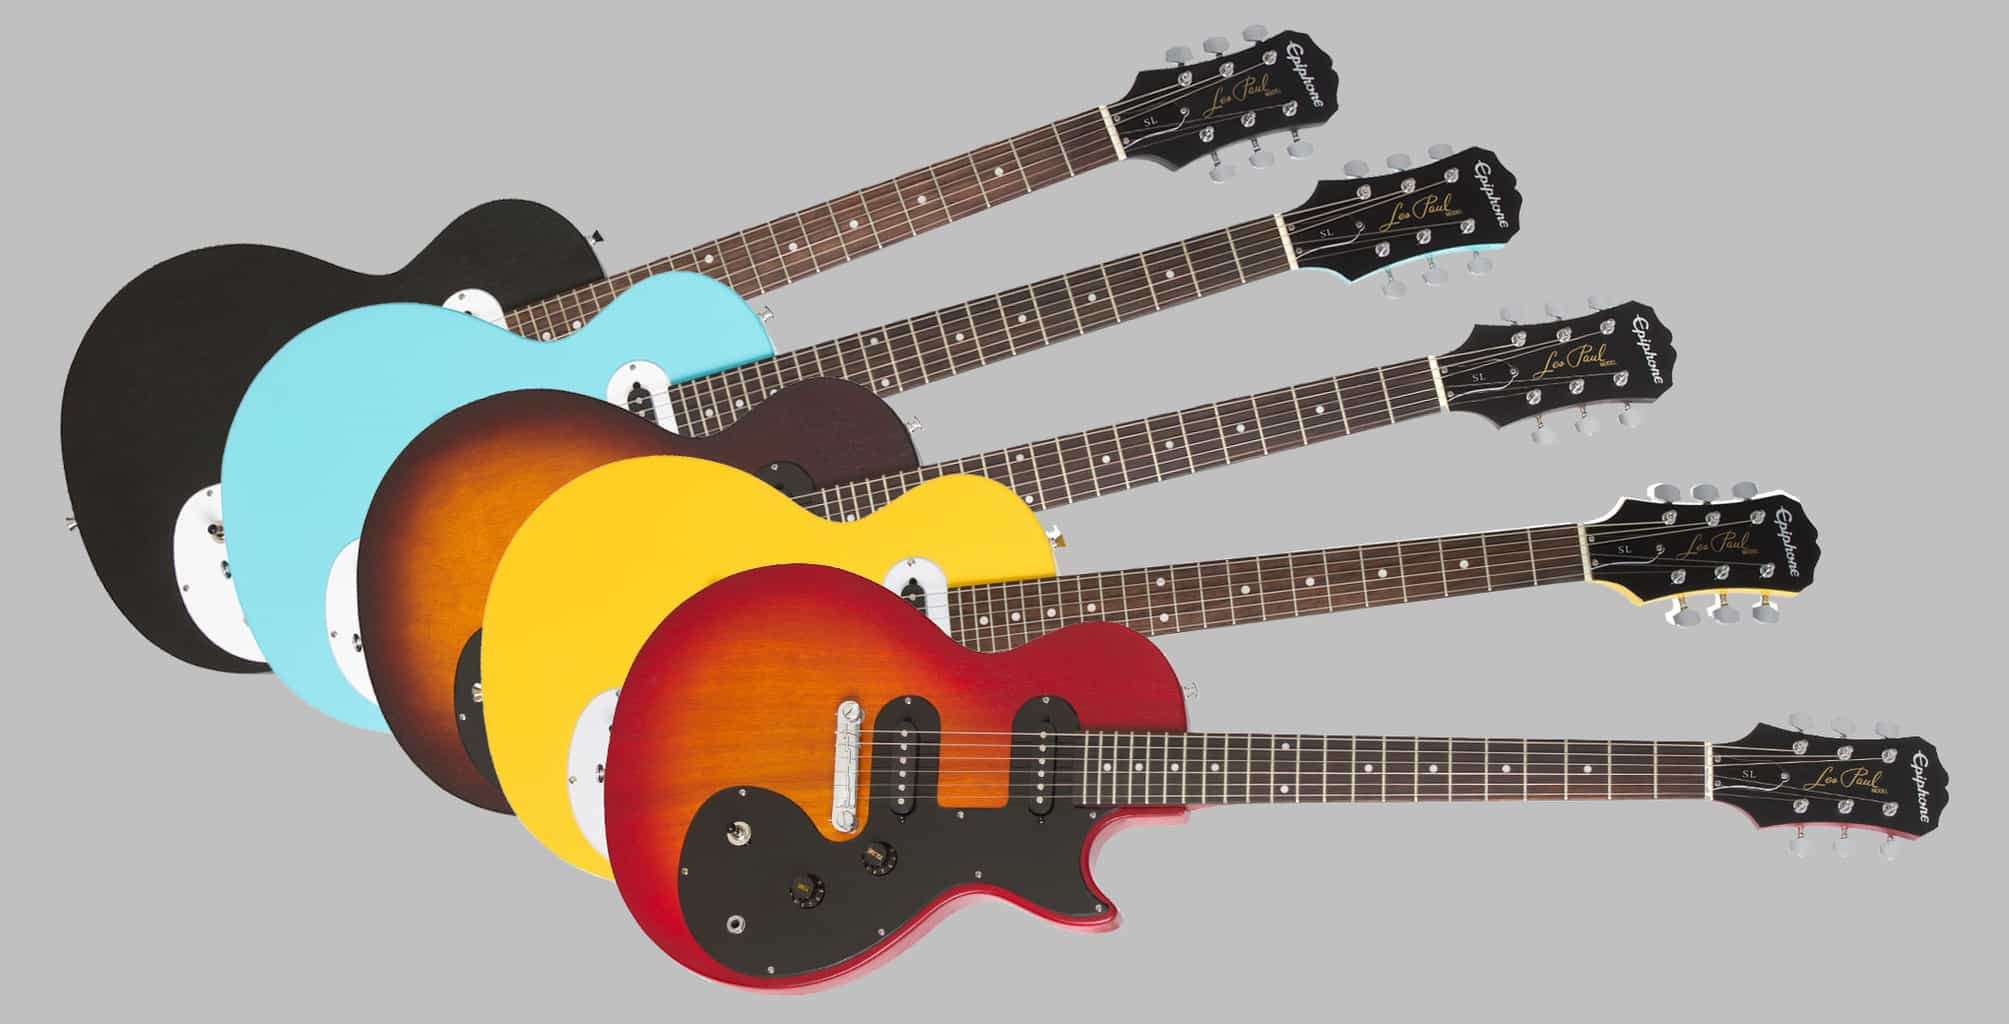 The Most Foolproof Cheap Electric Guitar To Give As A